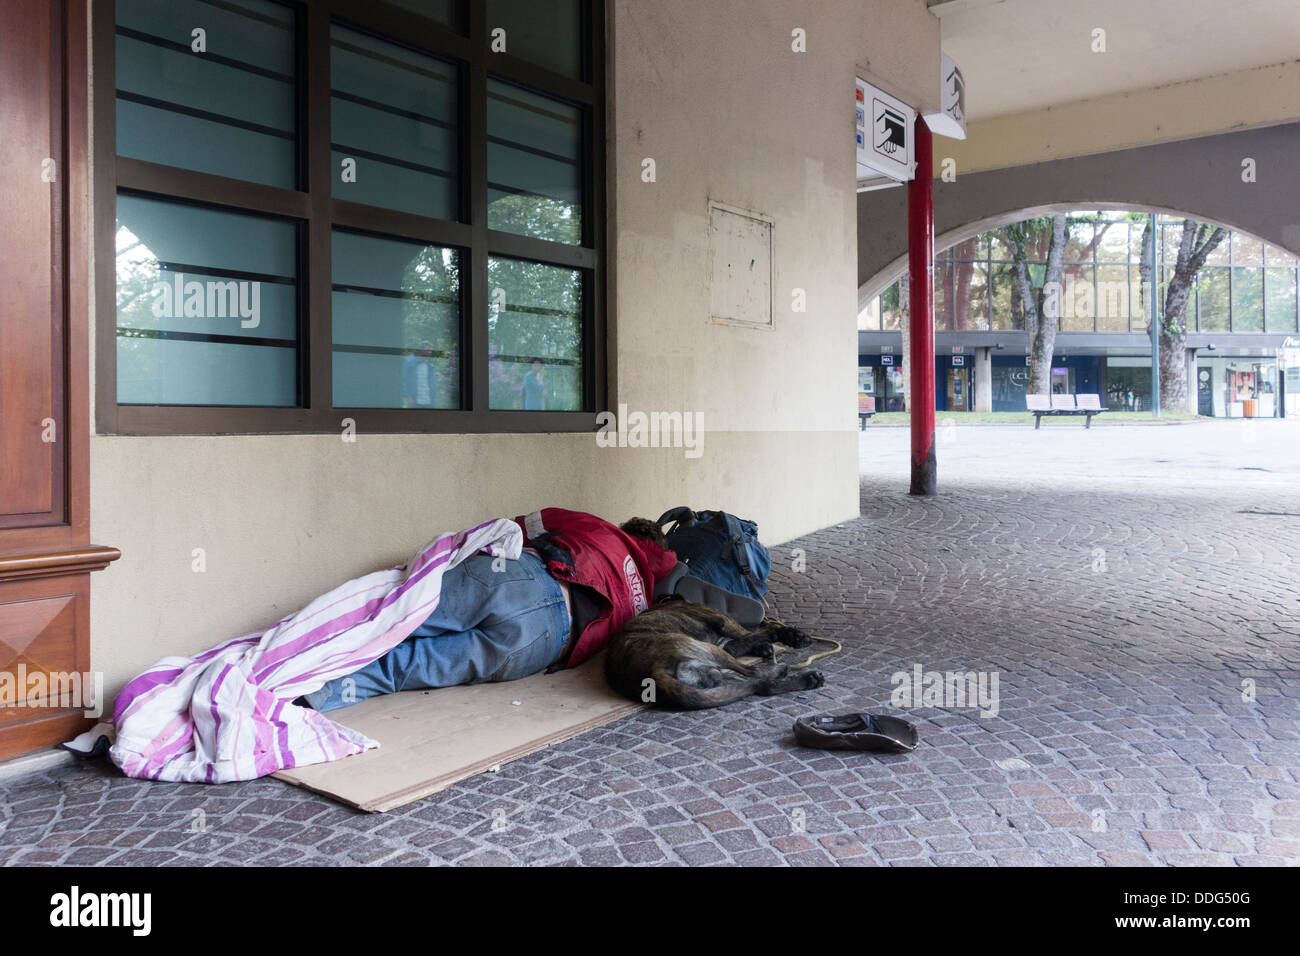 homeless man with dog sleeping on pavement, Annecy, France - Stock Image